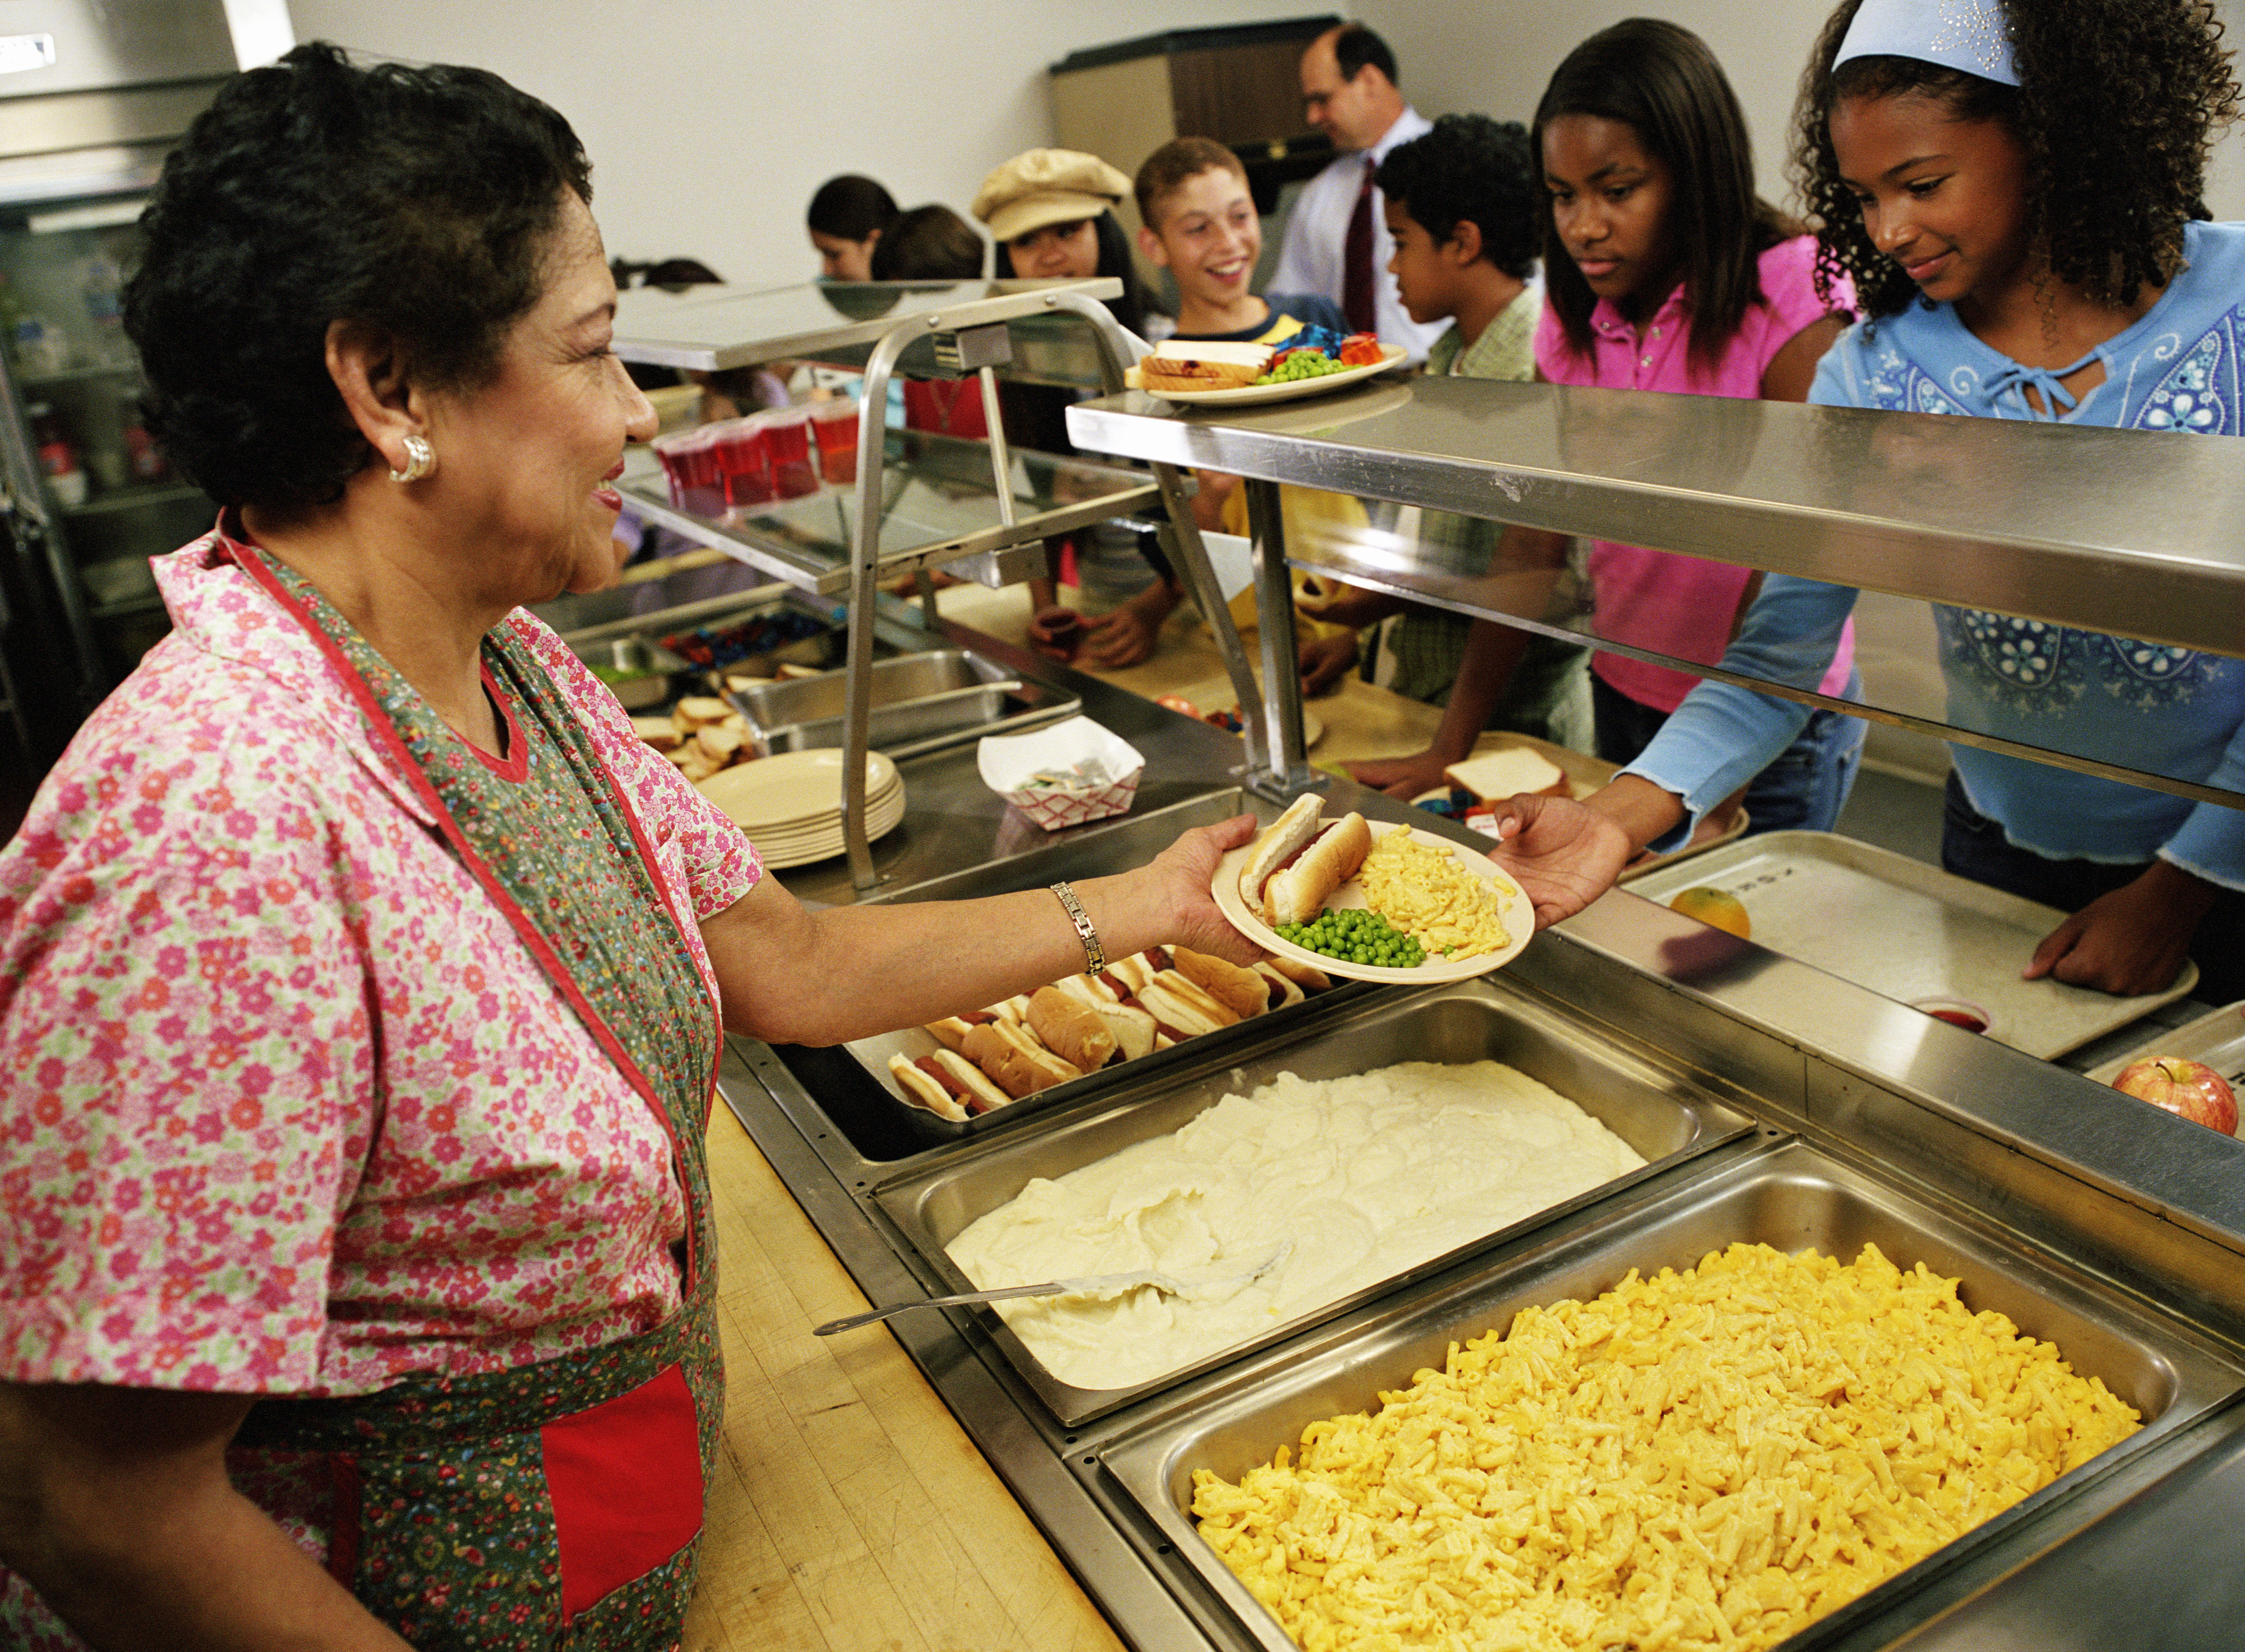 For many children, half their daily calories come from school lunch